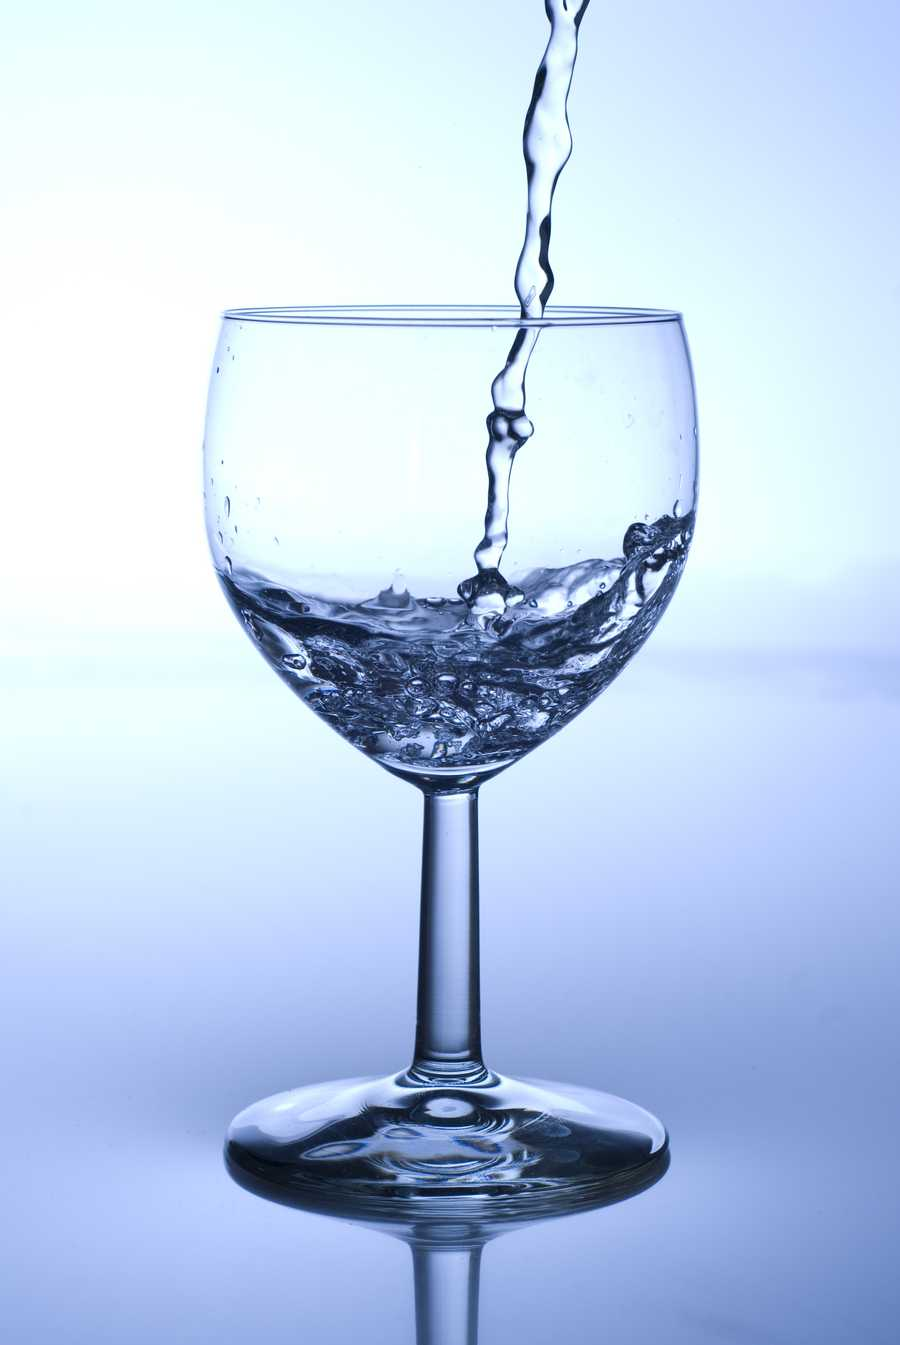 If you drink two glasses of water before meal, you won't be so much and you're less likely to trigger a high blood sugar, which tends to increase your appetite.